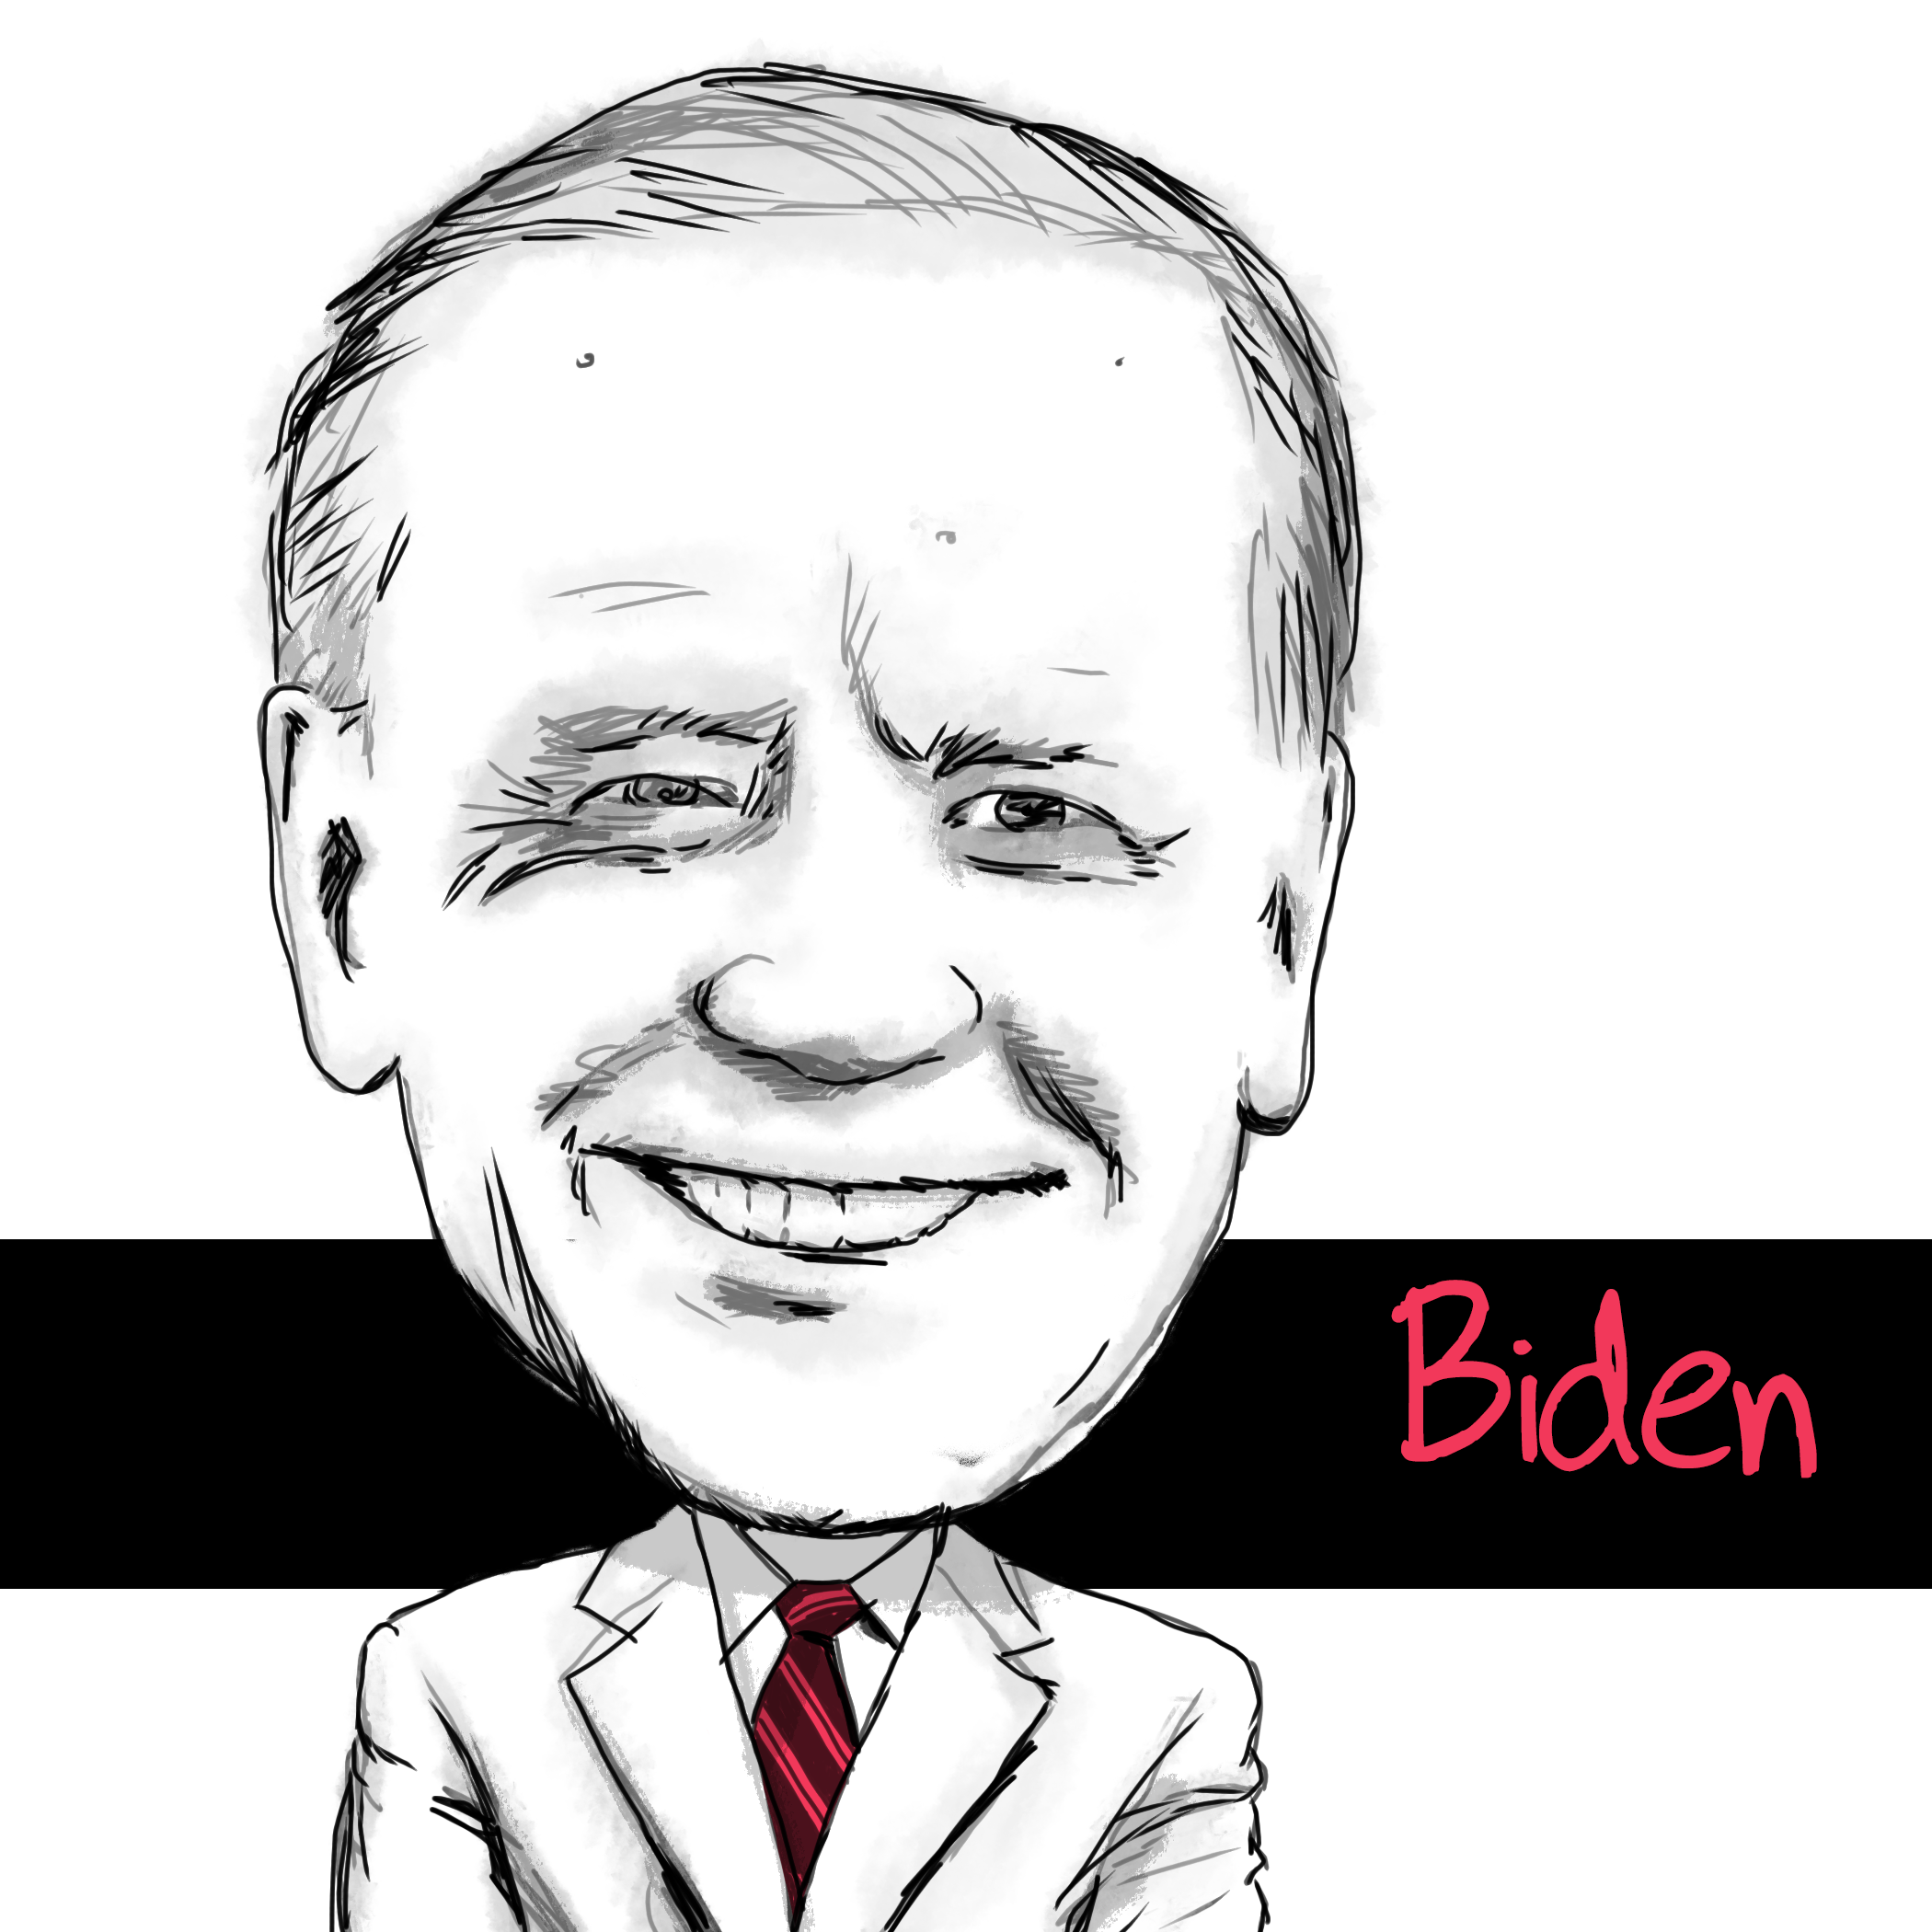 Joe Biden - Biden For President - https://joebiden.com